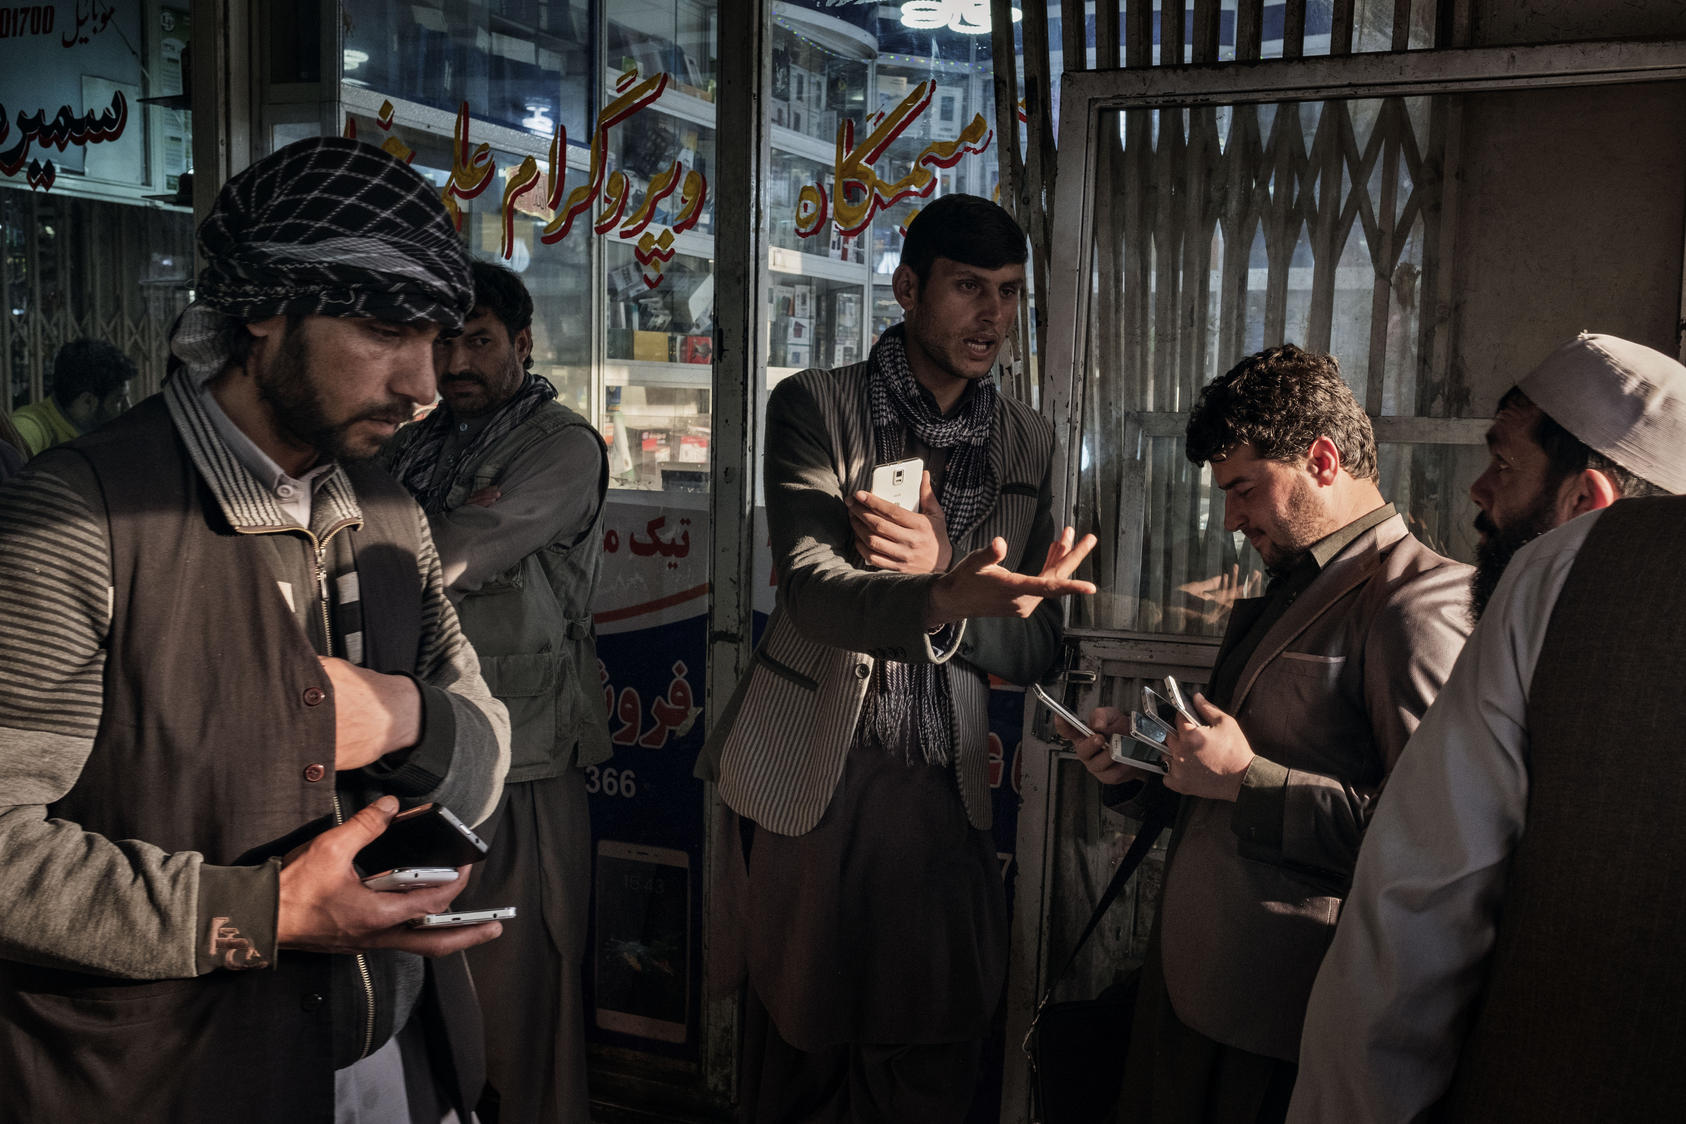 Afghans buy and sell used and new mobile phones, SIM cards and phone credit cards at a market in Kabul, Afghanistan, March 31, 2016. The local telecommunications industry was a rare economic bright spot, but losses are now mounting as new taxes are imposed and a dwindling pool of customers as American troops and foreign contractors leave.